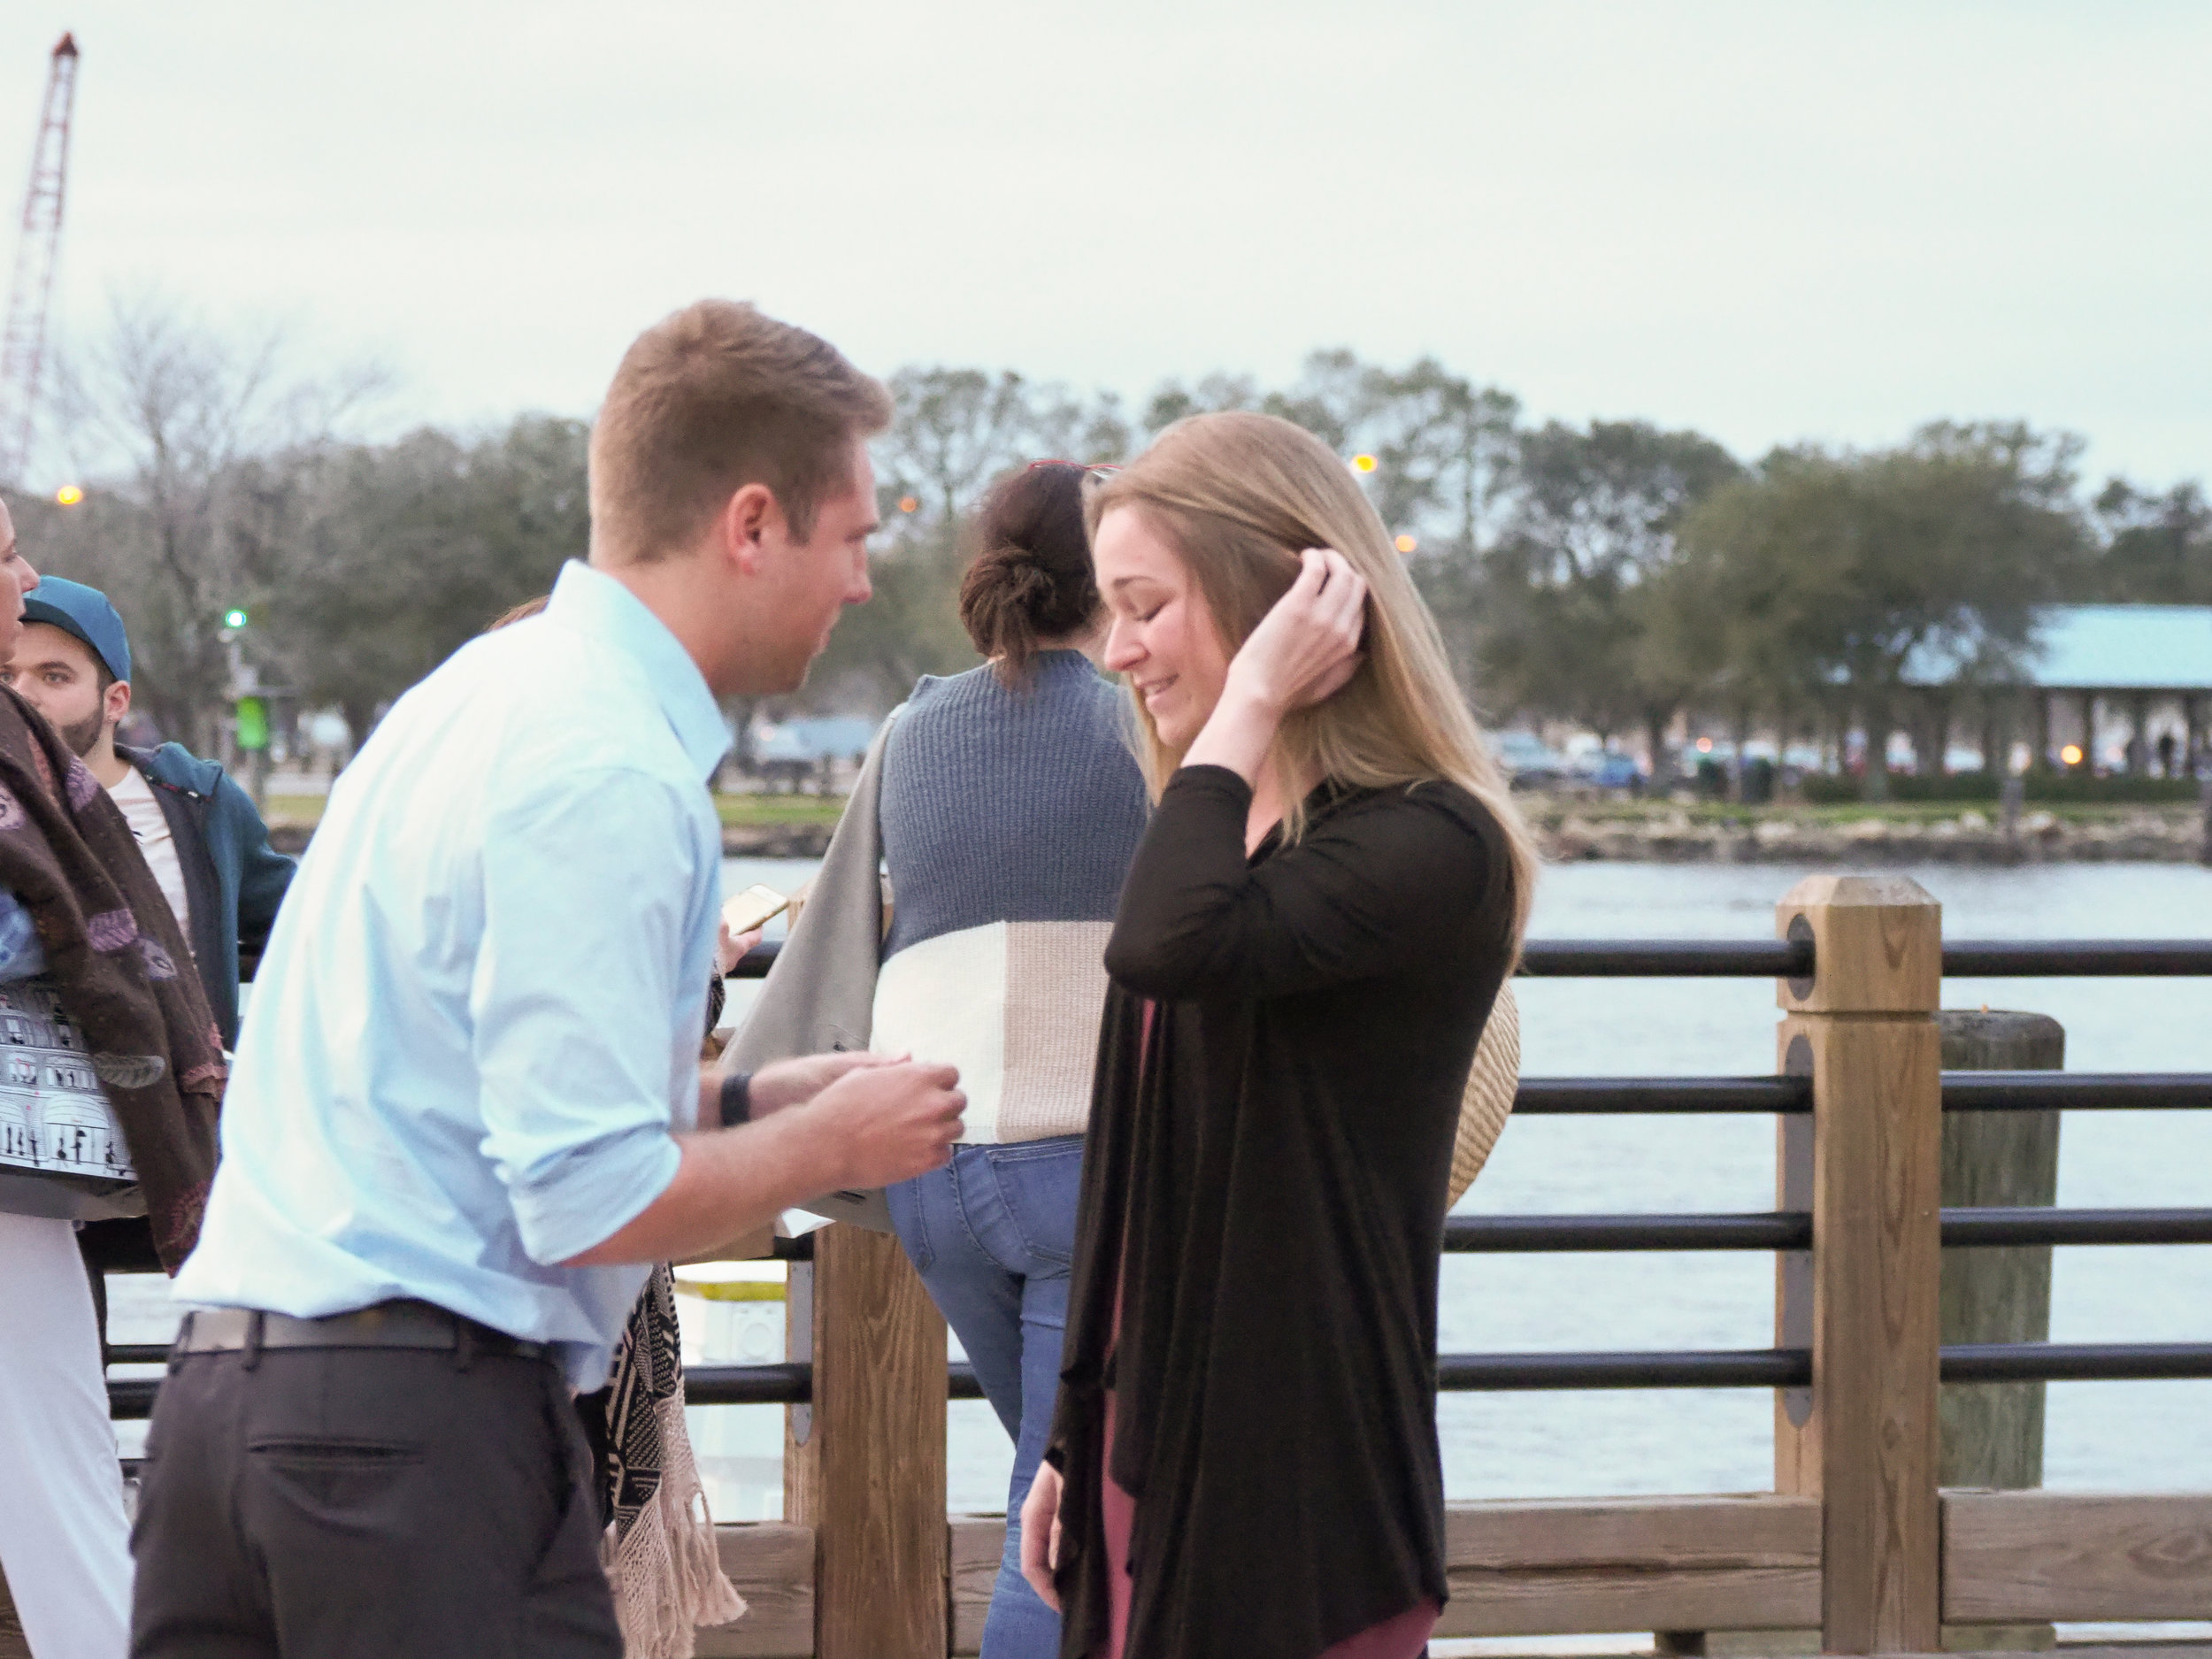 The Ring. - He pulls the ring out on the Riverwalk in Wilmington, NC.